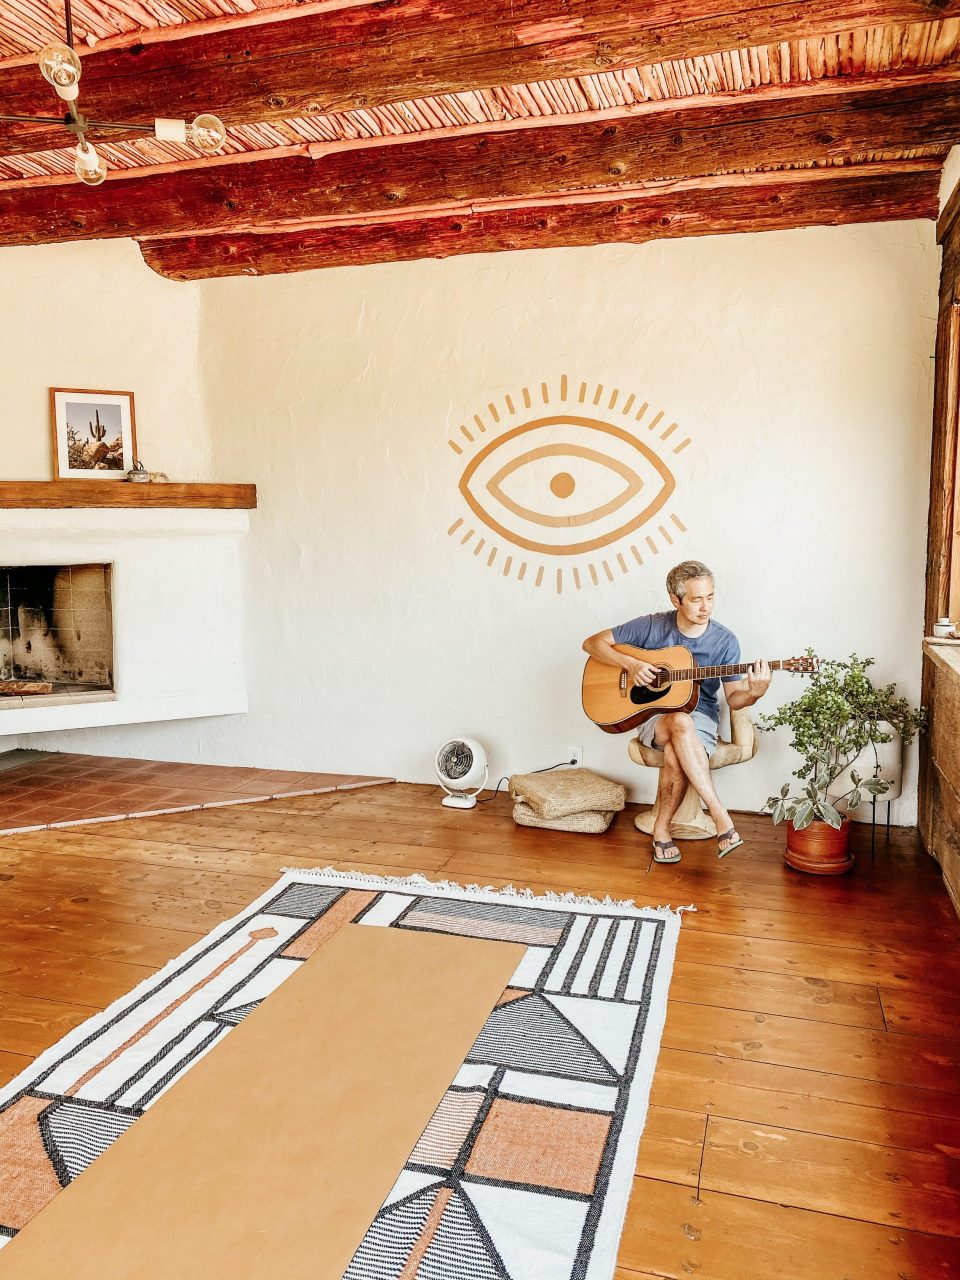 Travis playing guitar in an open yoga room beneath a minimalist mural of an eye